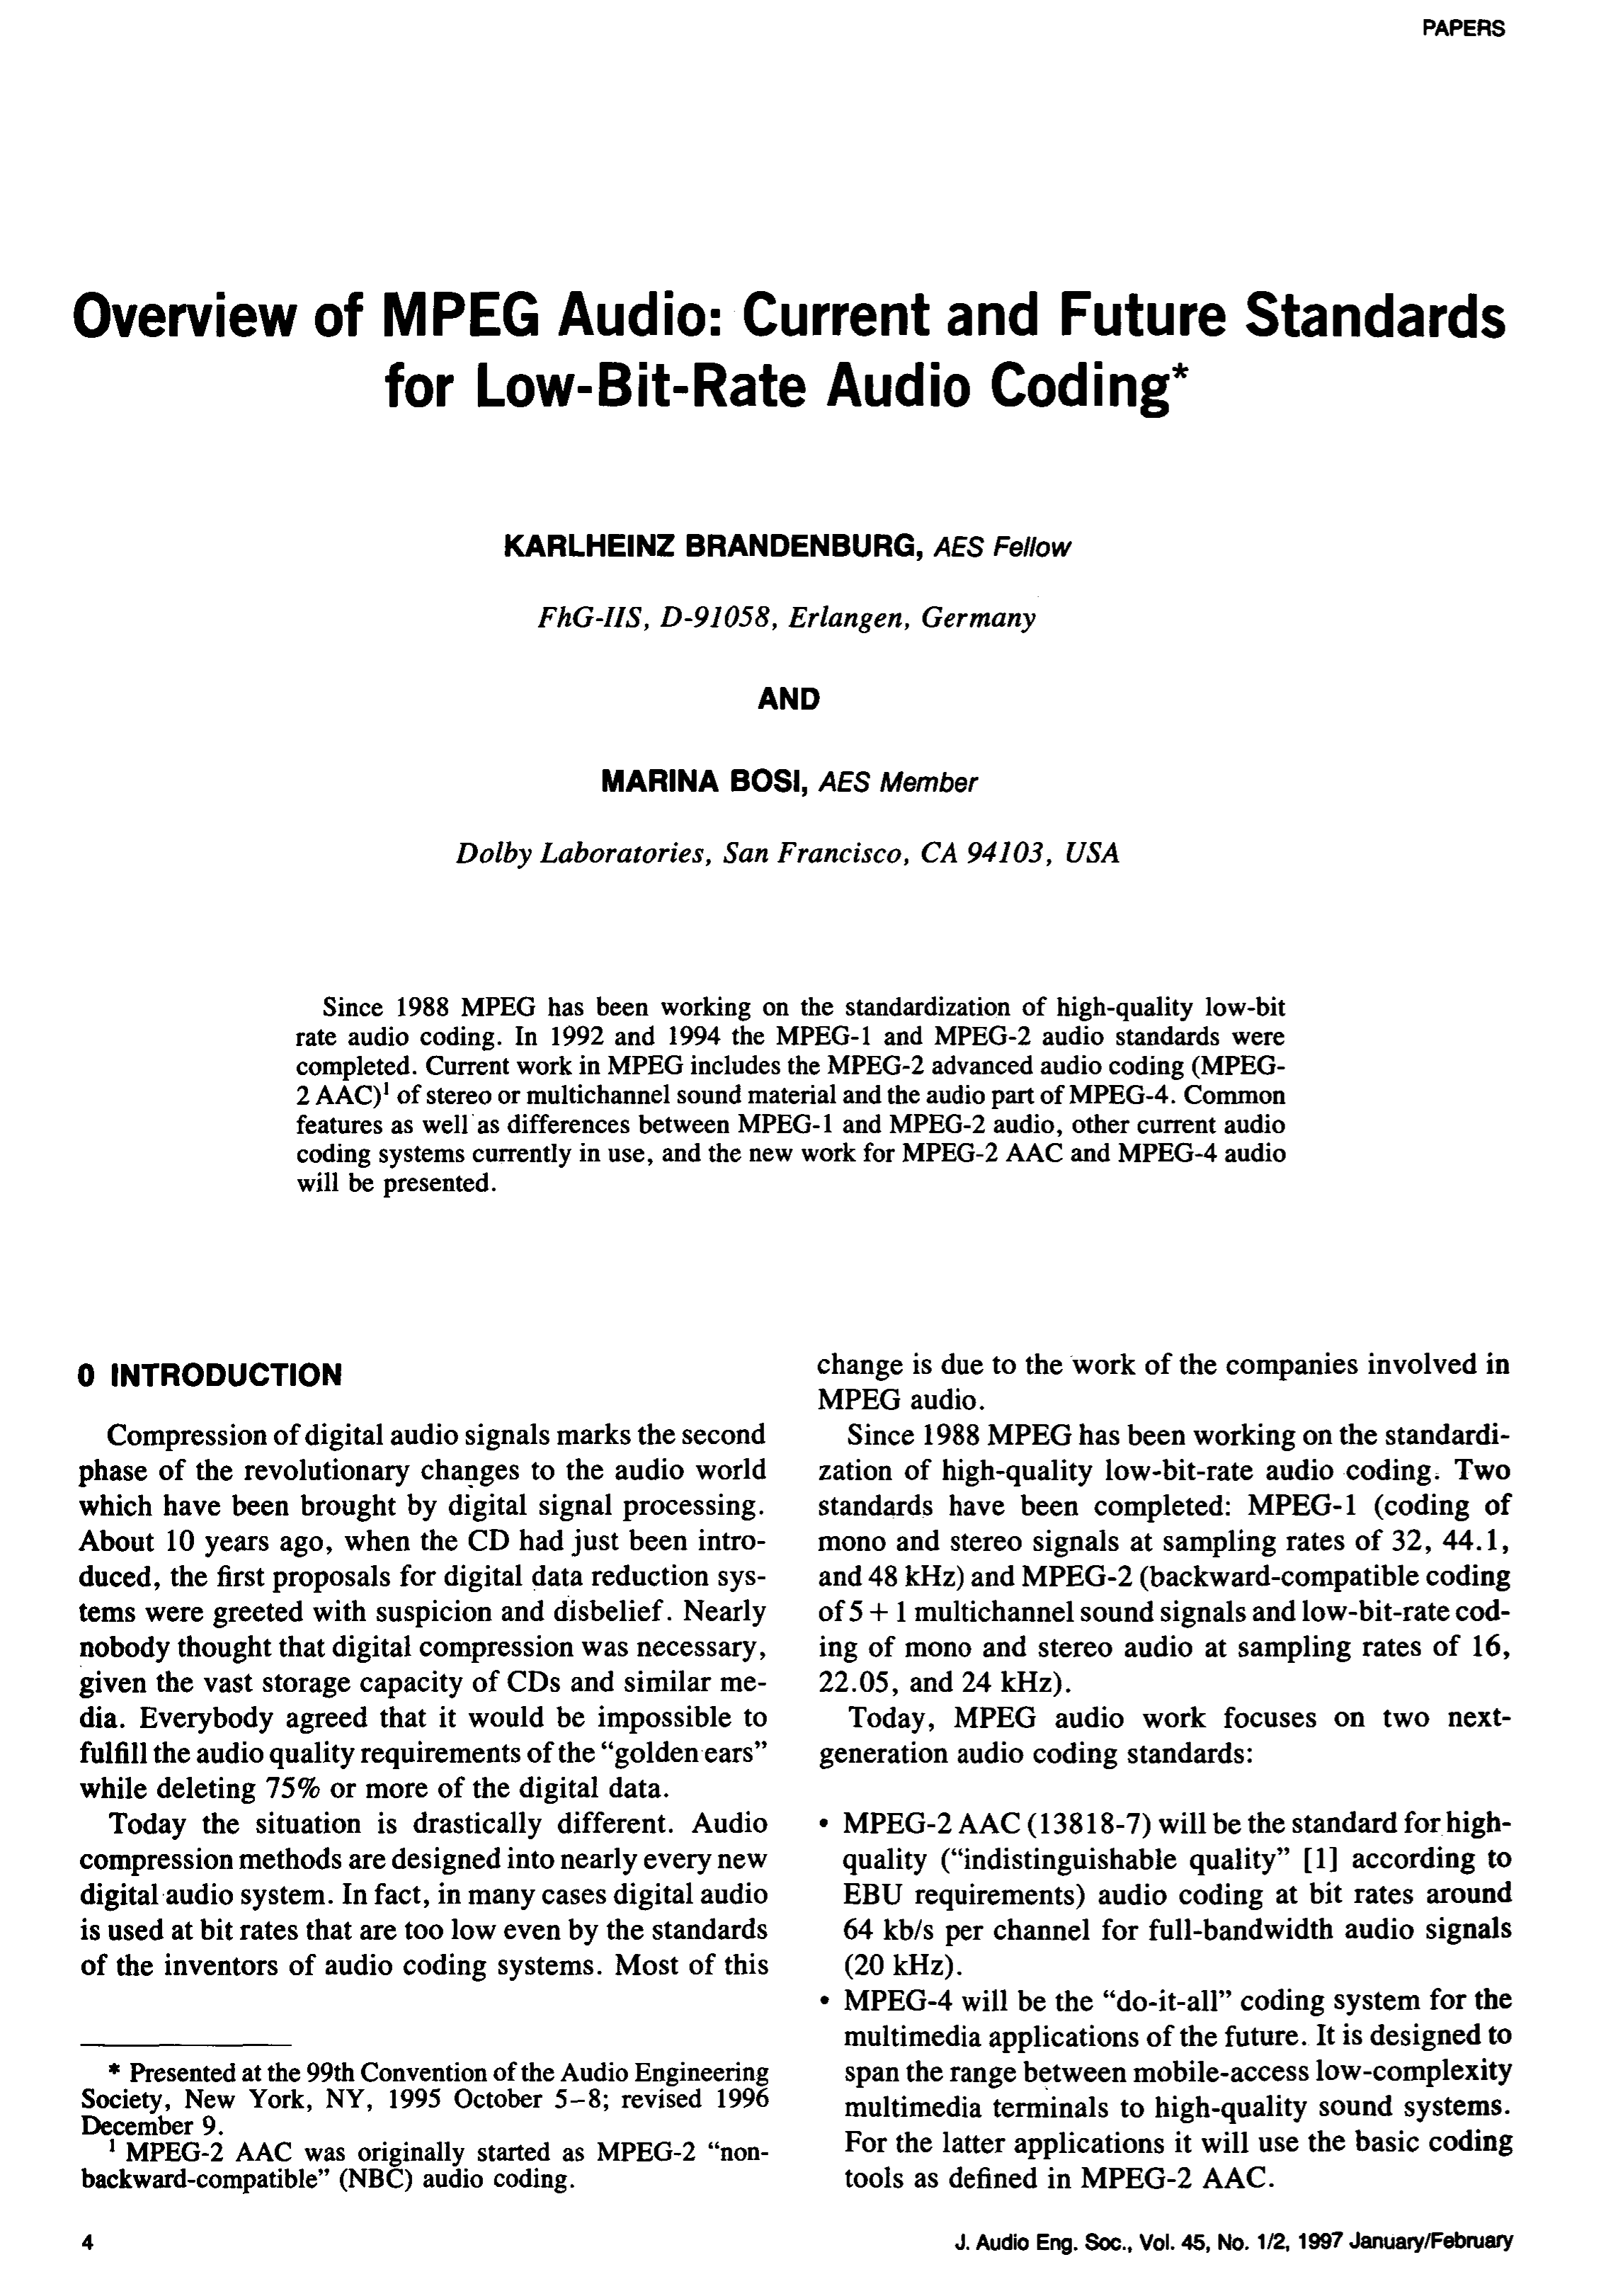 Aes E Library Overview Of Mpeg Audio Current And Future Standards 45khz Lowpass Statevariable Filter Circuit Diagram Tradeofic For Low Bit Rate Coding